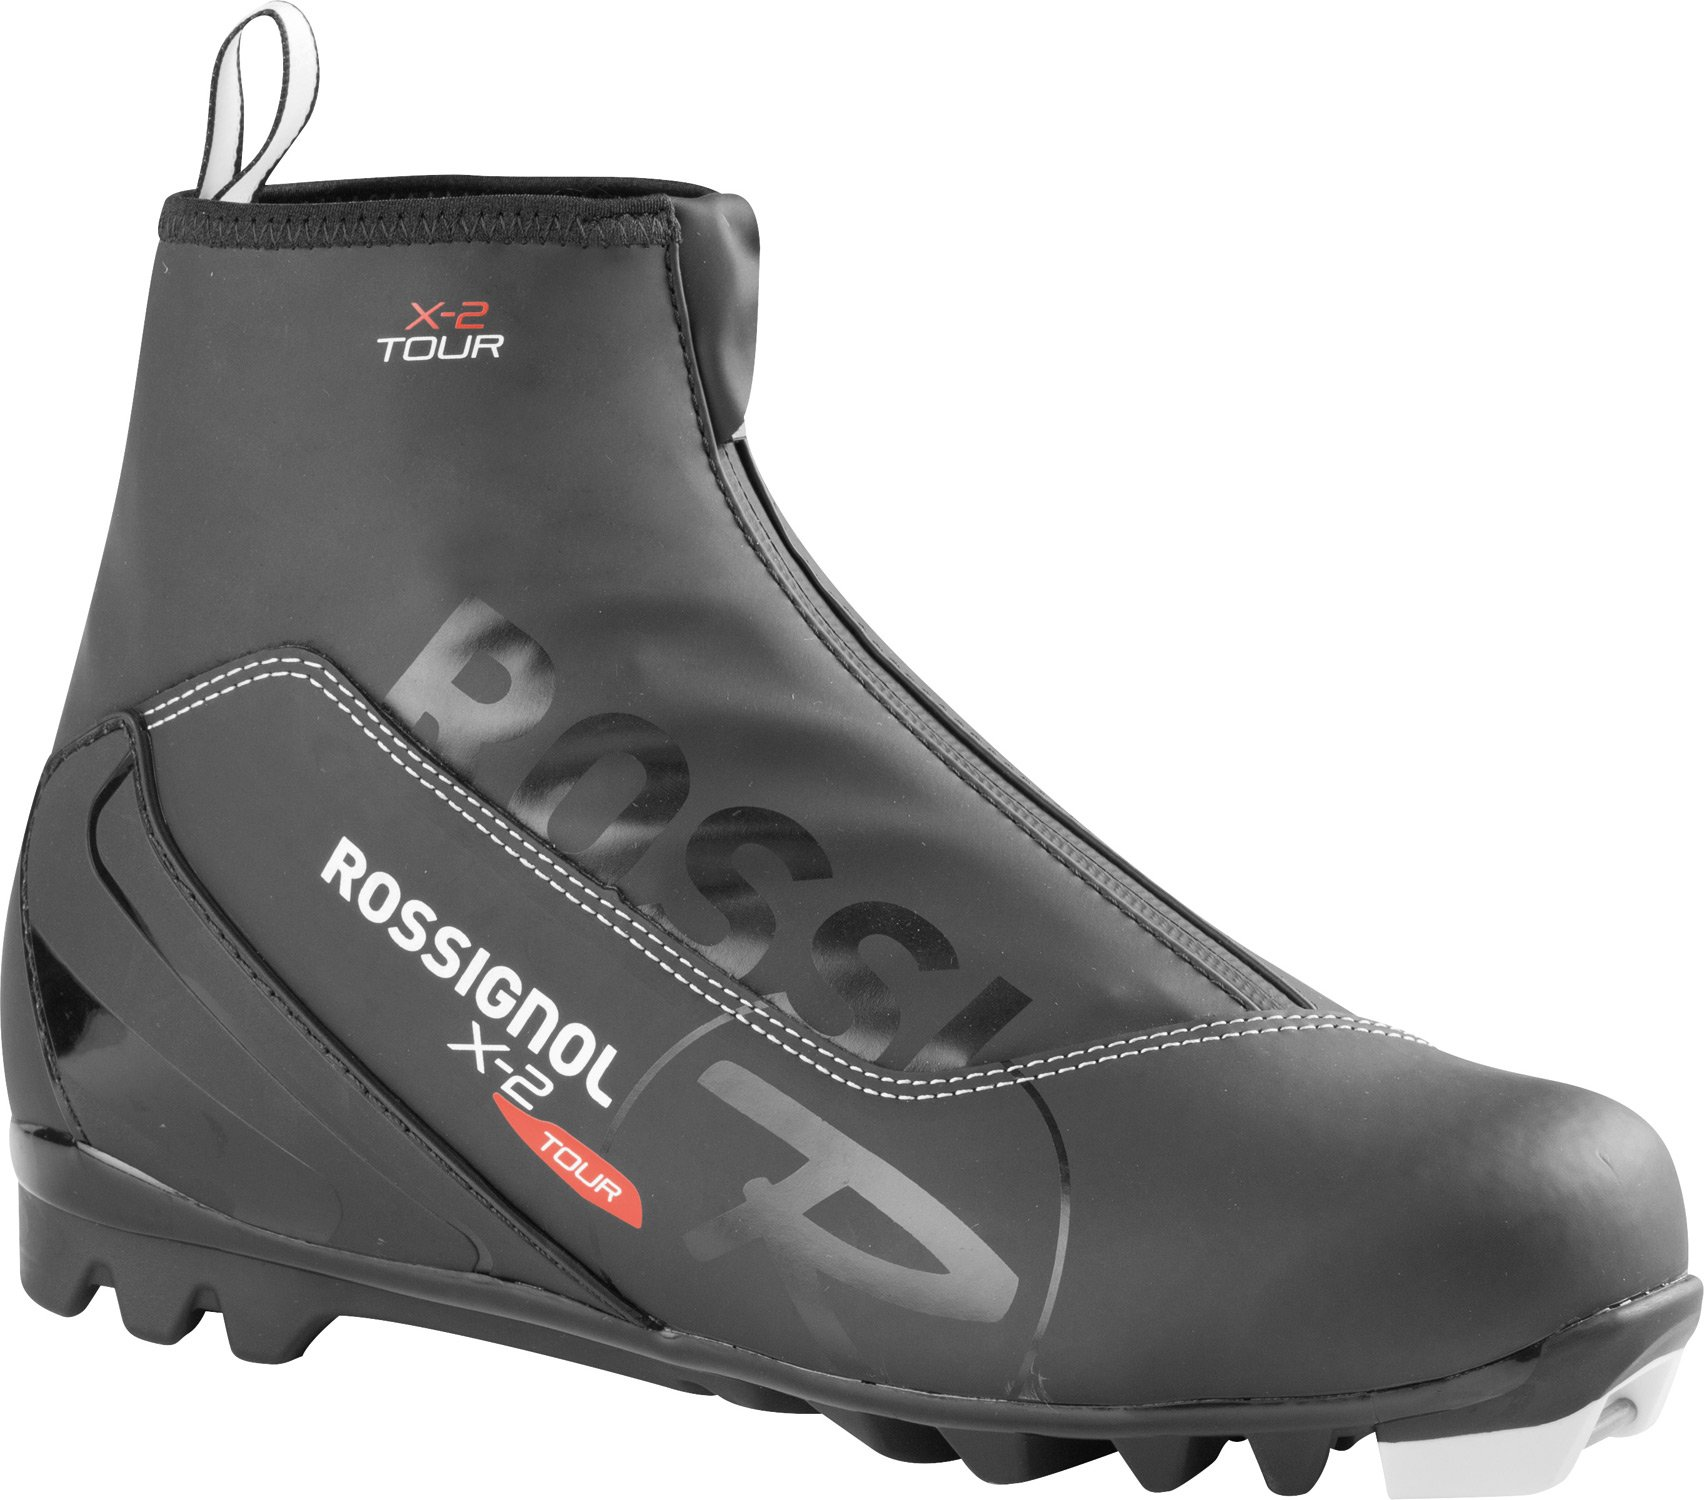 Rossignol X-2 NNN Cross Country Ski Boots - 48/Black by Rossignol